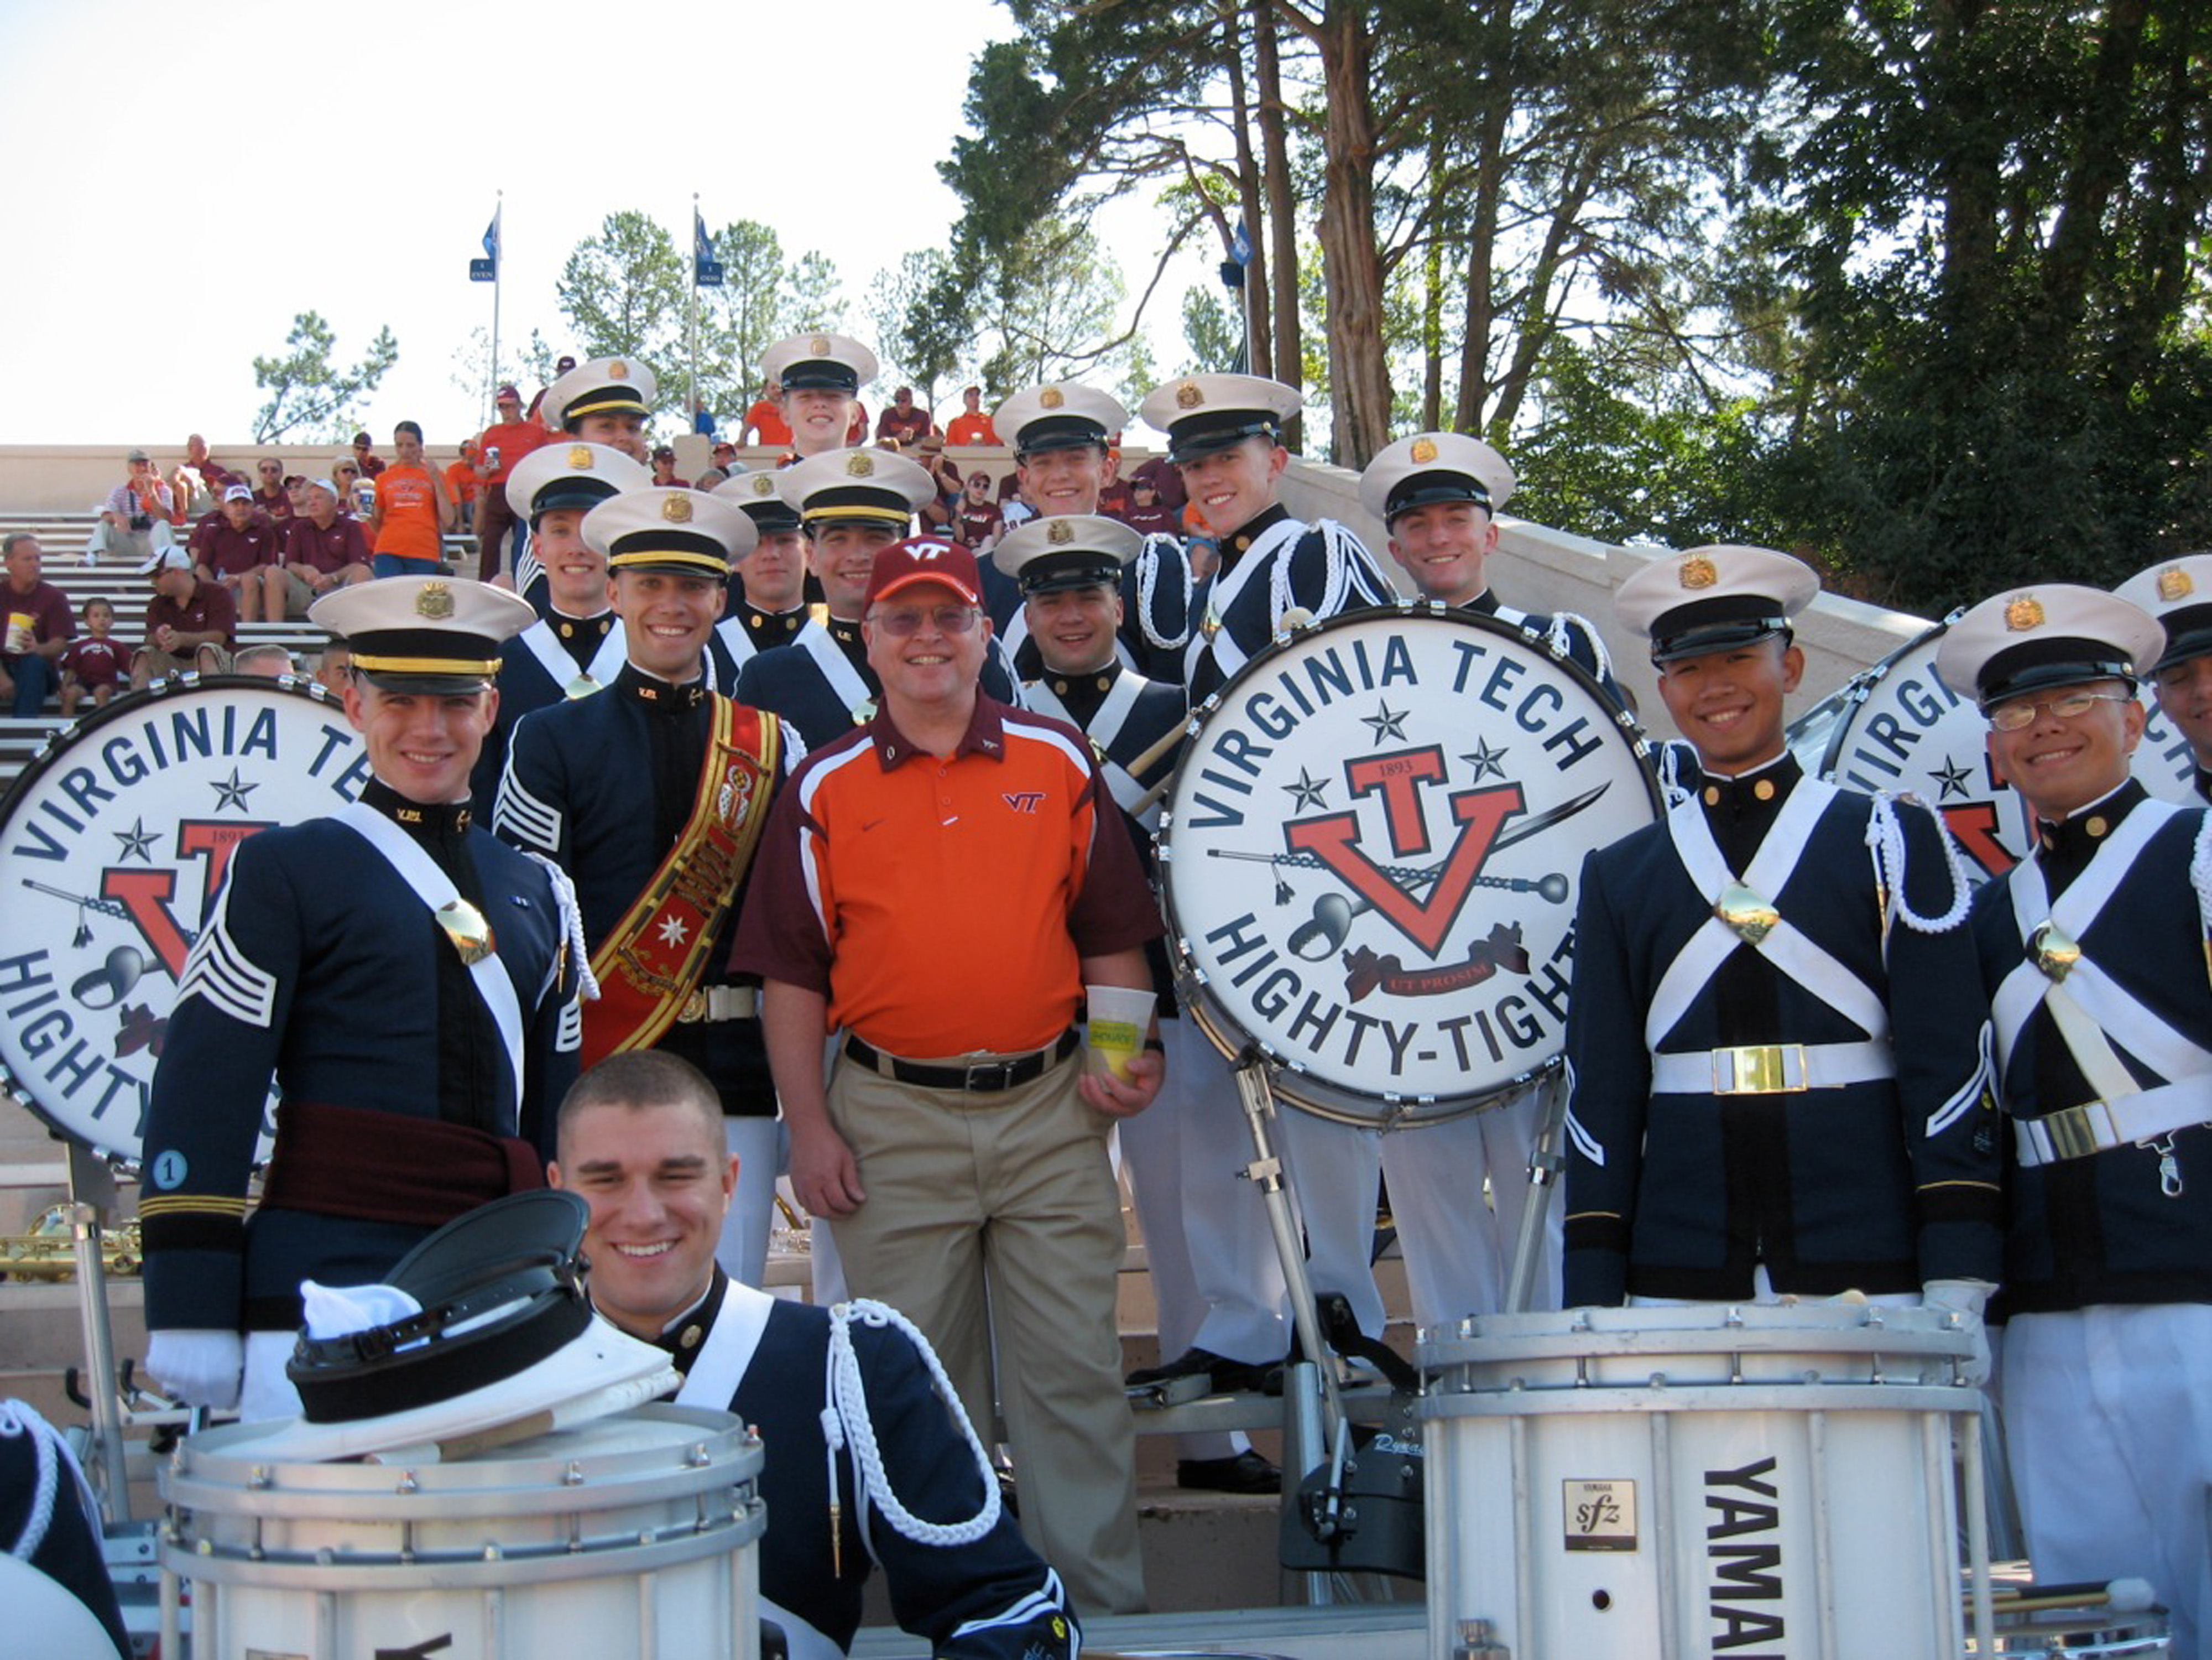 Members of the Highty-Tighties, the Regimental Band, with Assistant Director of Admissions retired Lt. Col. Gary Jackson, U.S. Army, Virginia Tech Corps of Cadets and Highty-Tighty Class of 1978 shown at the Duke game in 2009